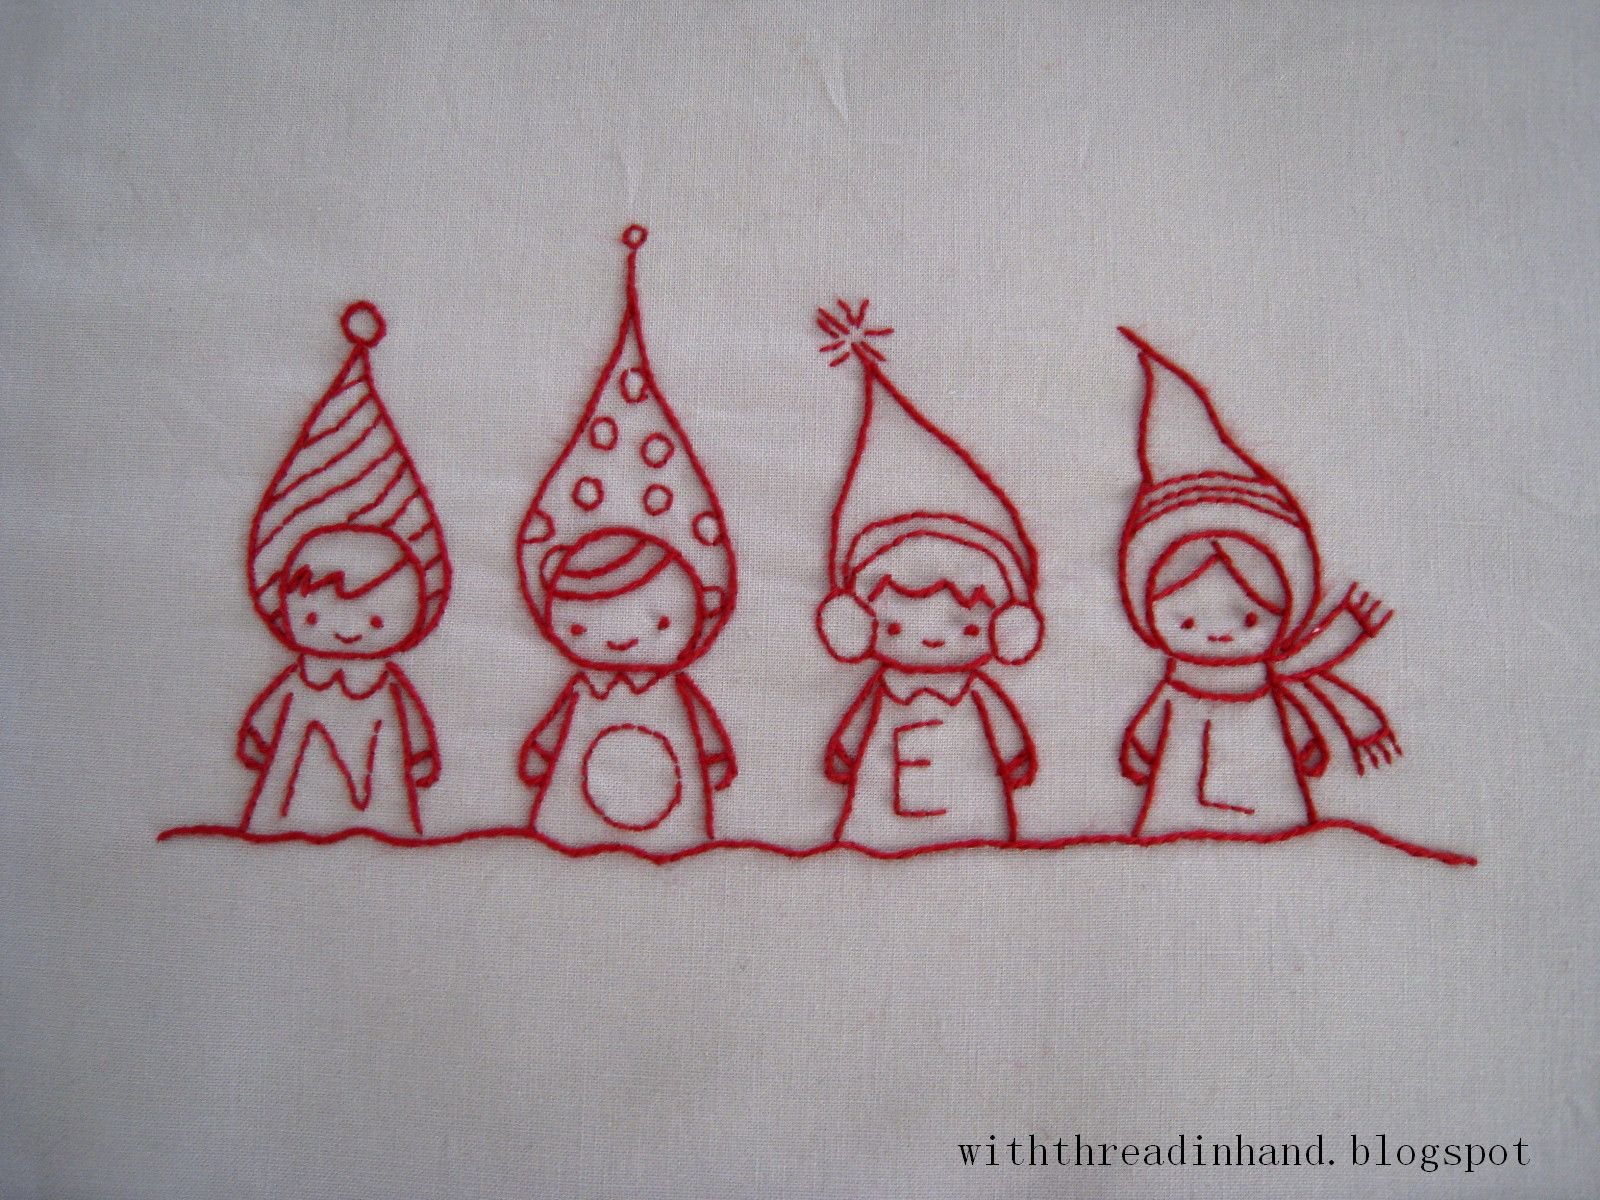 Christmas embroidery patterns by the talented annie